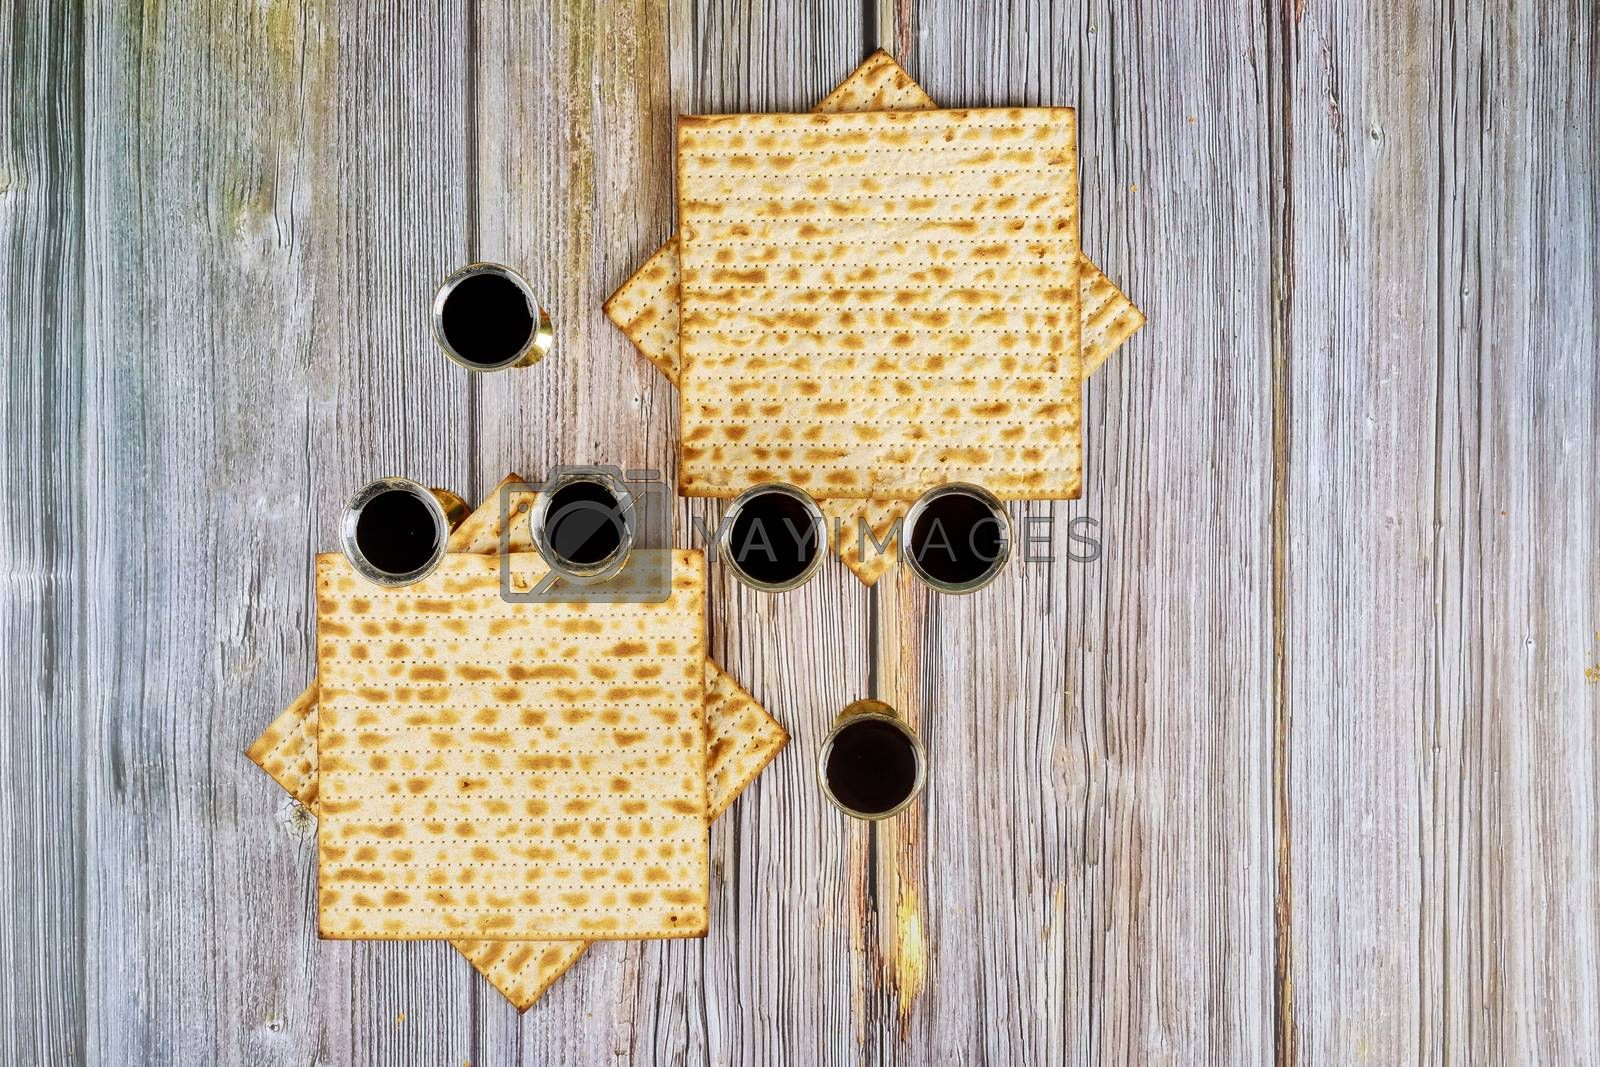 Passover six cup wine and matzoh jewish holiday bread traditional Pesach day